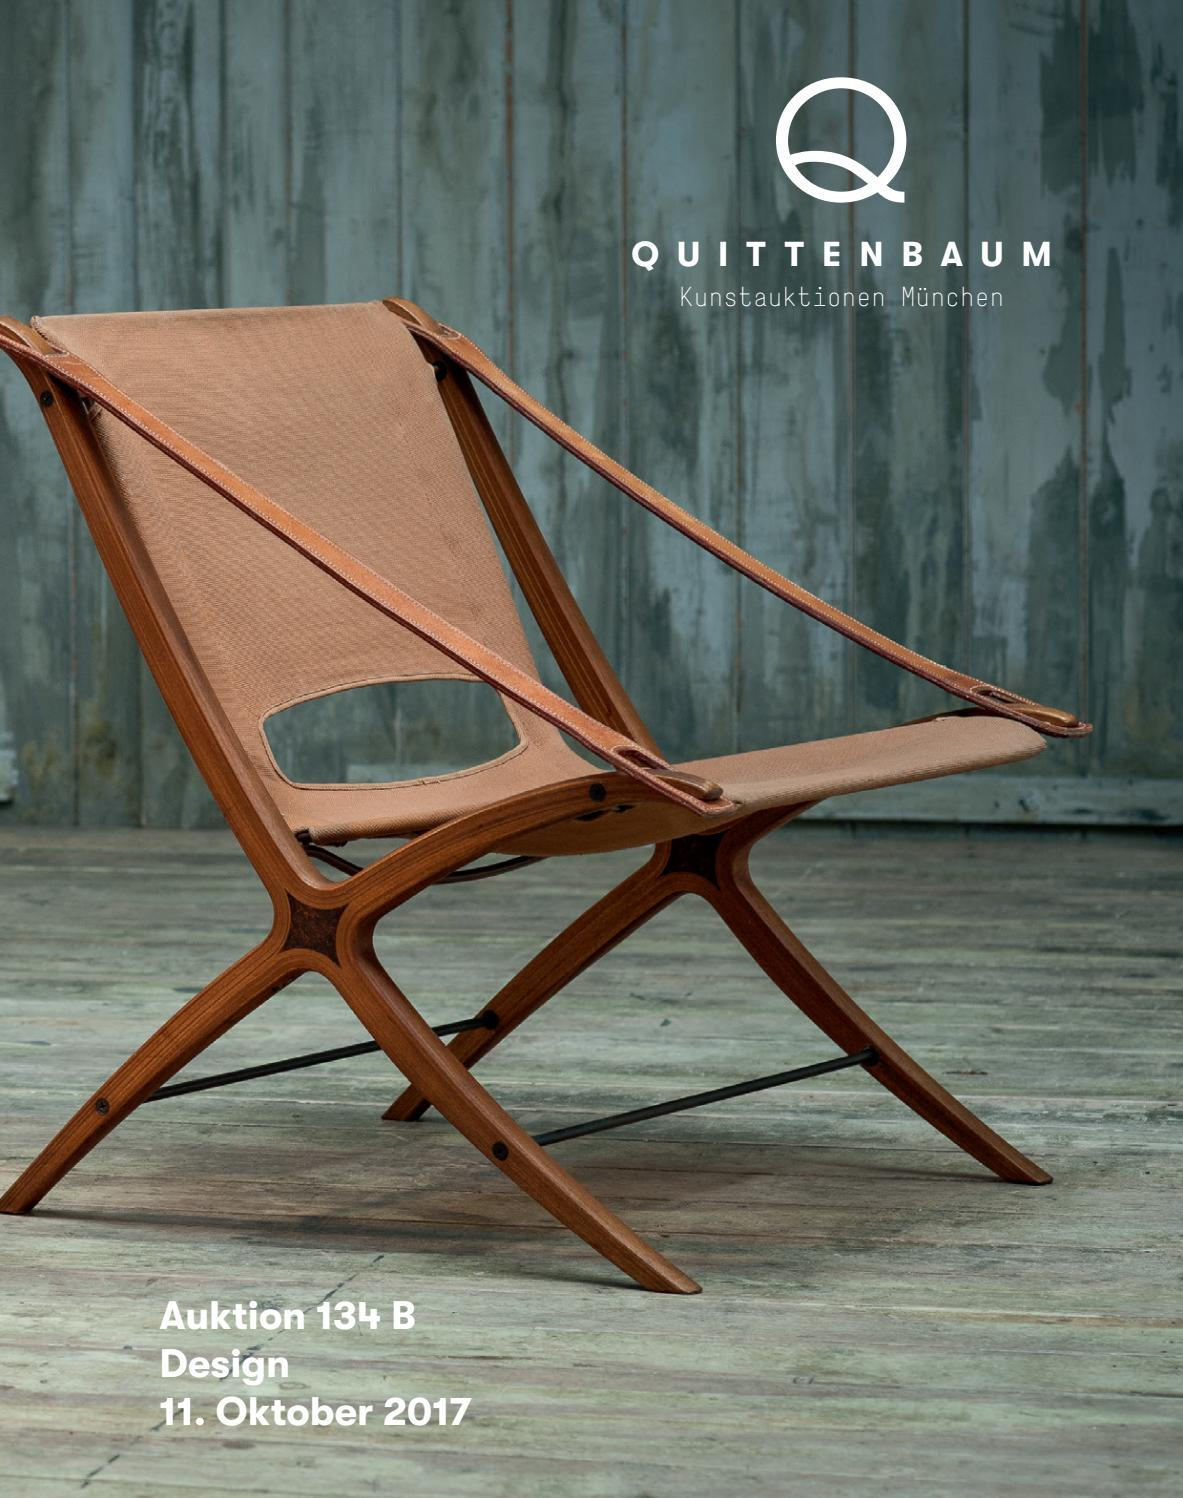 Schon Auction 134 B | Design | Quittenbaum Art Auctions By Quittenbaum  Kunstauktionen GmbH   Issuu